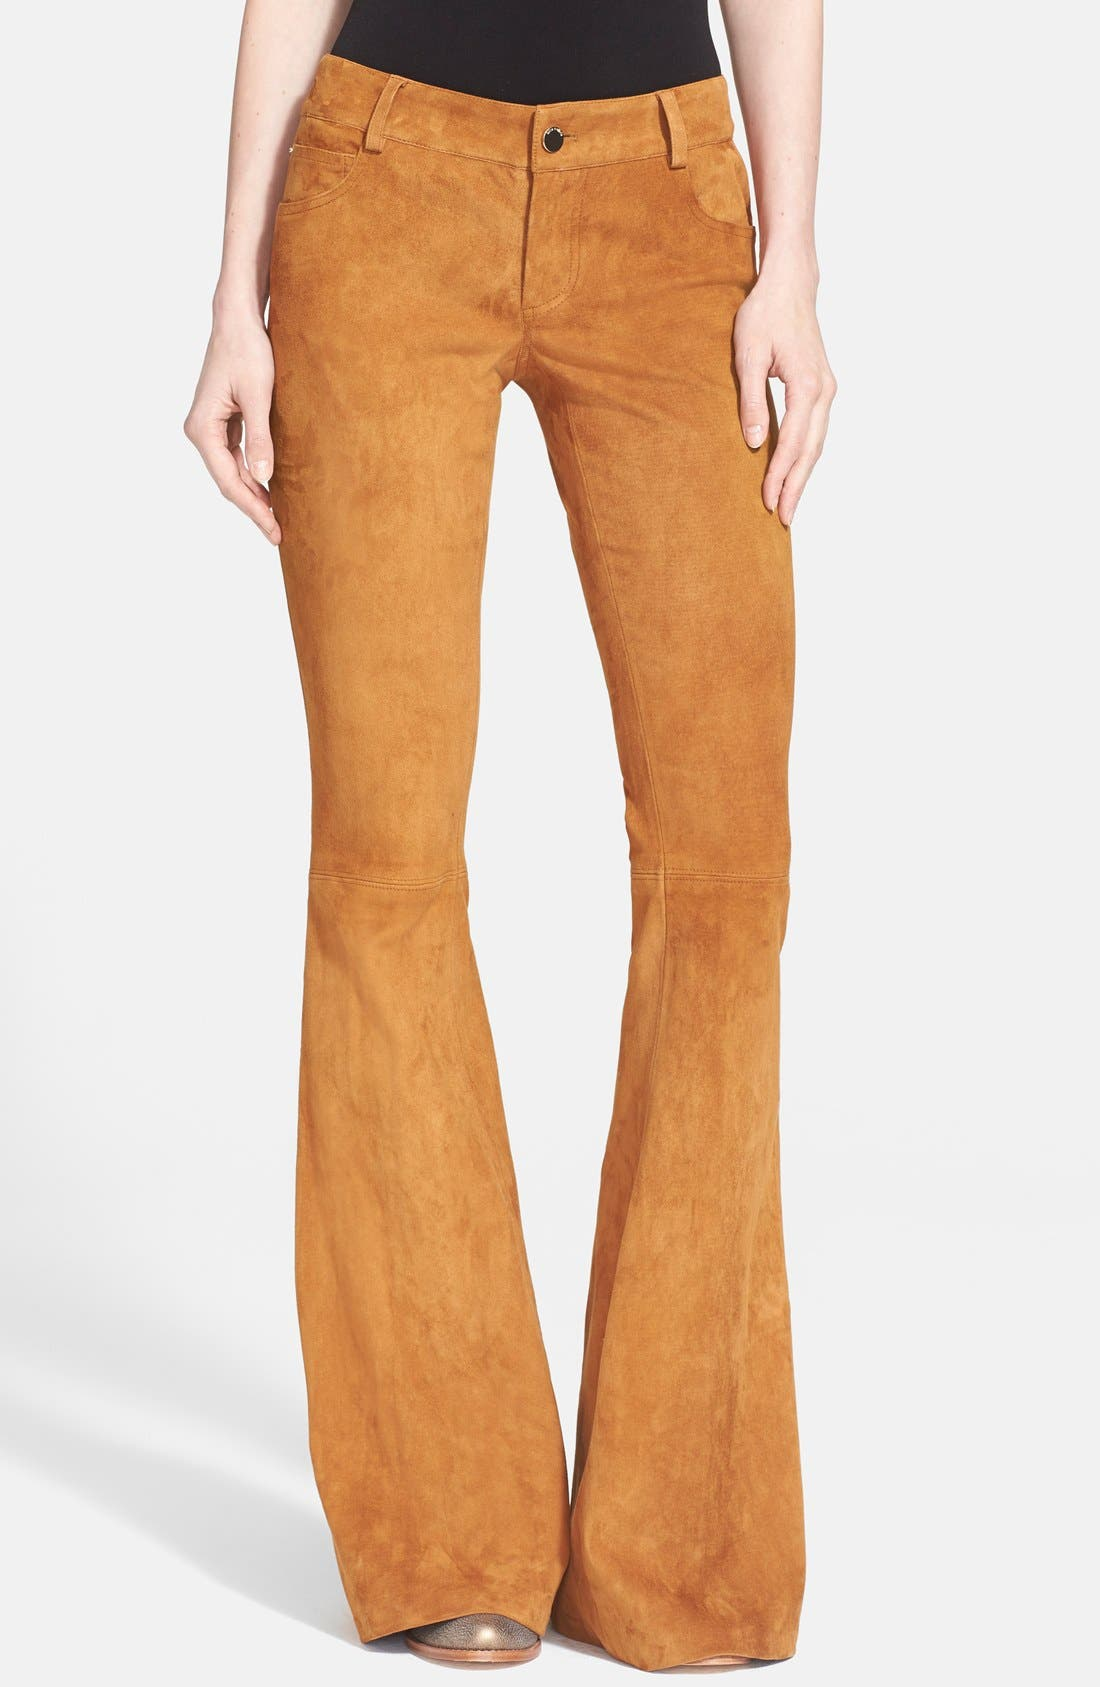 Alternate Image 1 Selected - Alice + Olivia Suede Leather Pants